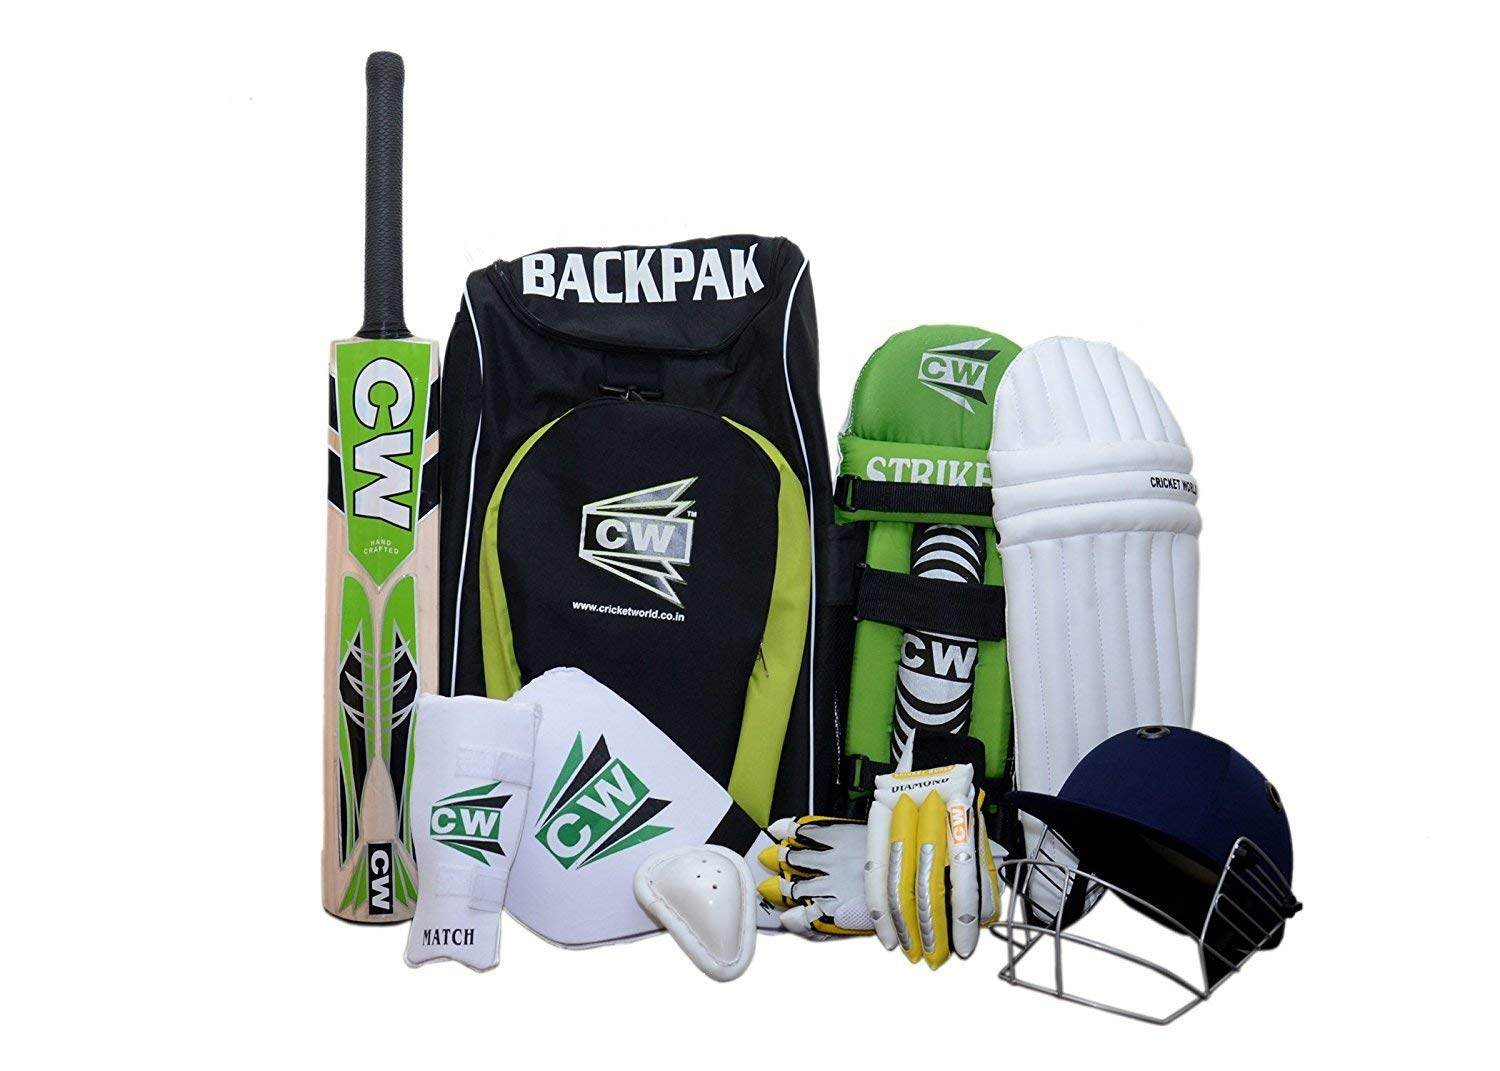 C&W CW Brand New Sports Cricket kit Green Size No. 6 With English Willow League 20-20 Ideal for 11-12 year child Short Handle Cricket bat,Helmet, Batting Gloves,Arm &Thigh Guard,